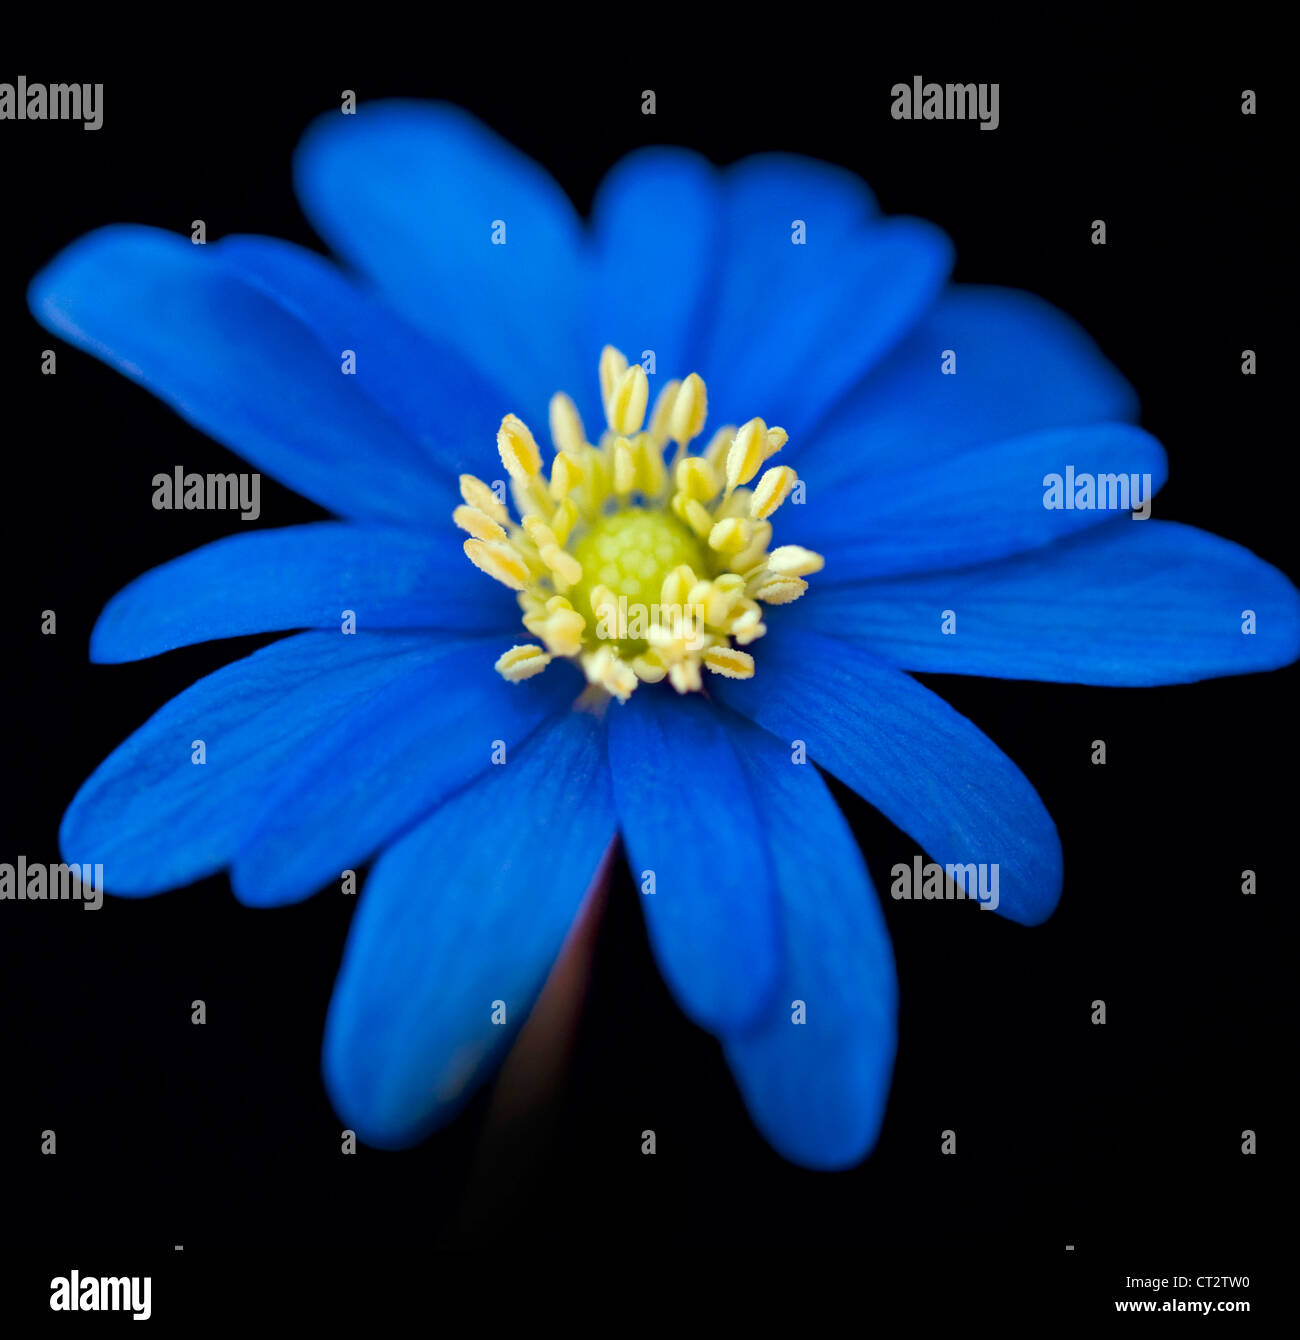 Anemone single blue flower against a black background - Plants with blue flowers a splash of colors in the garden ...